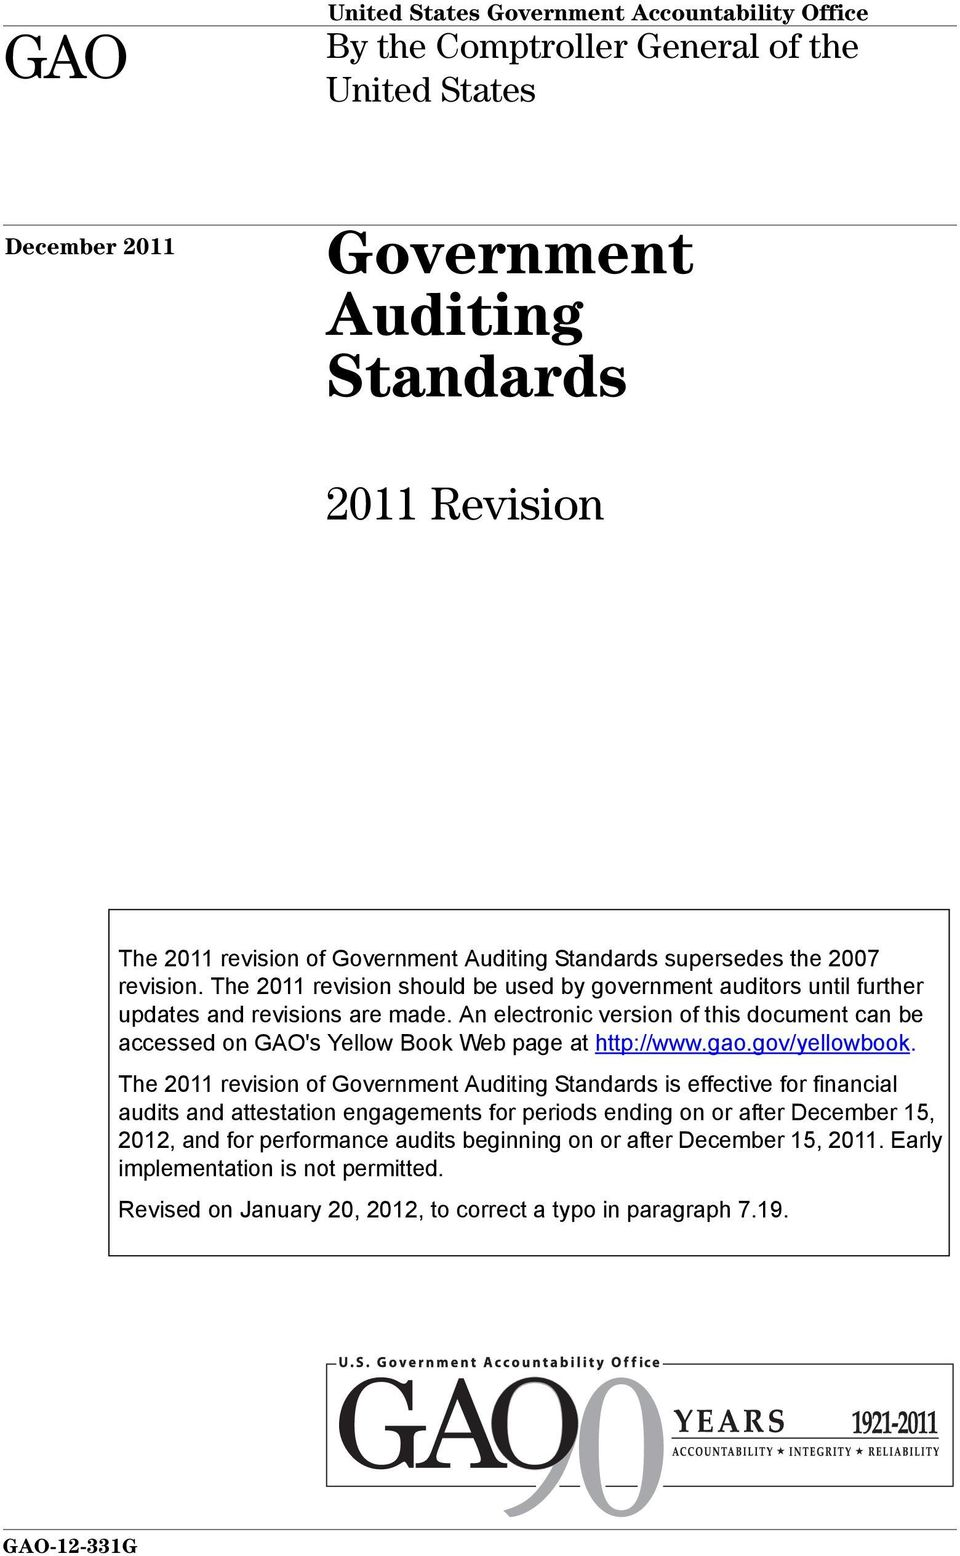 An electronic version of this document can be accessed on GAO's Yellow Book Web page at http://www.gao.gov/yellowbook.